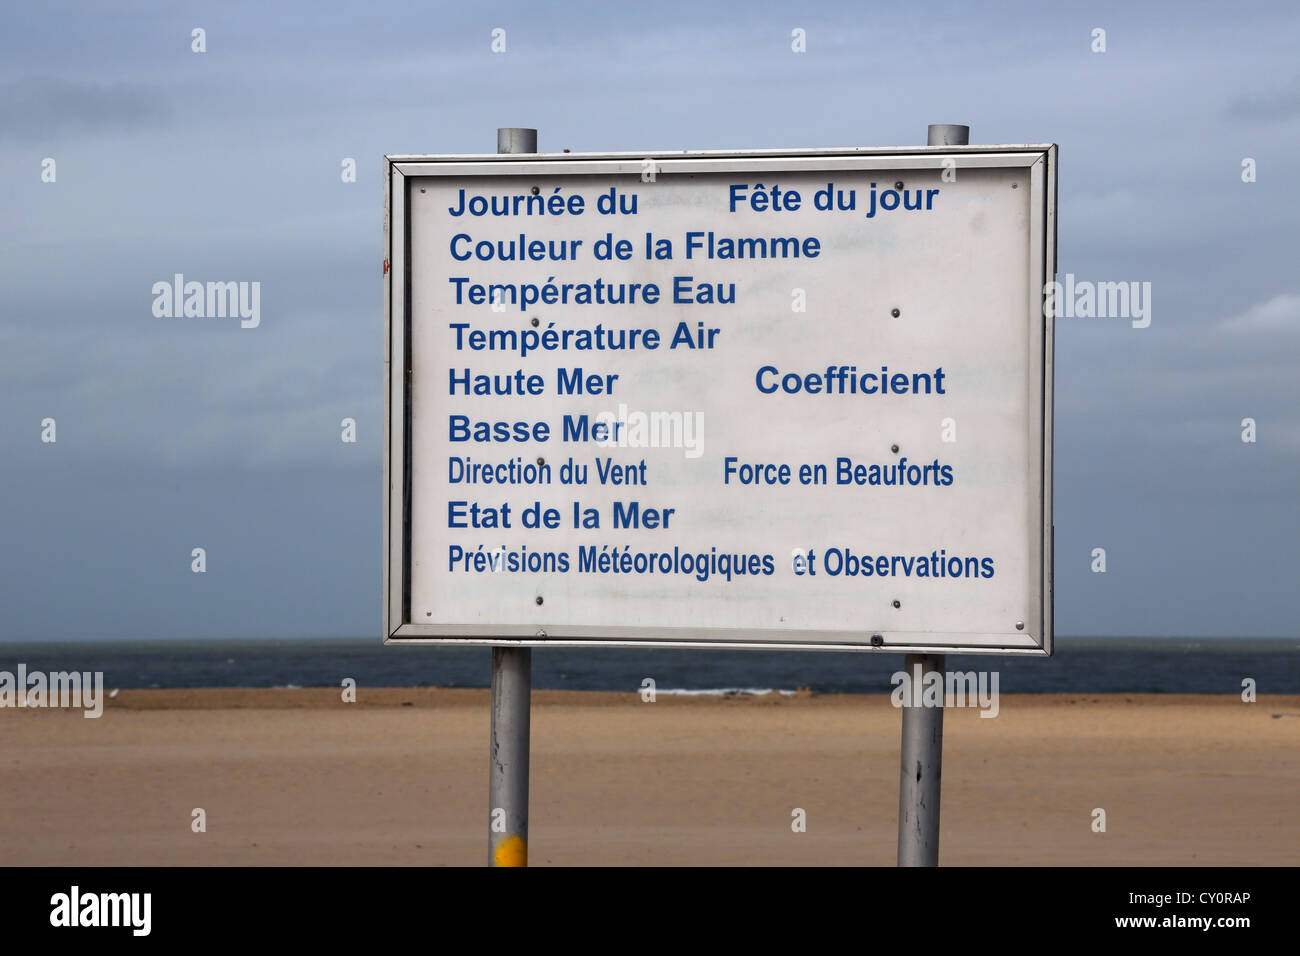 Calais France Calais Beach Sign Showing The Meteorological Observations Of The Beach And Sea - Stock Image